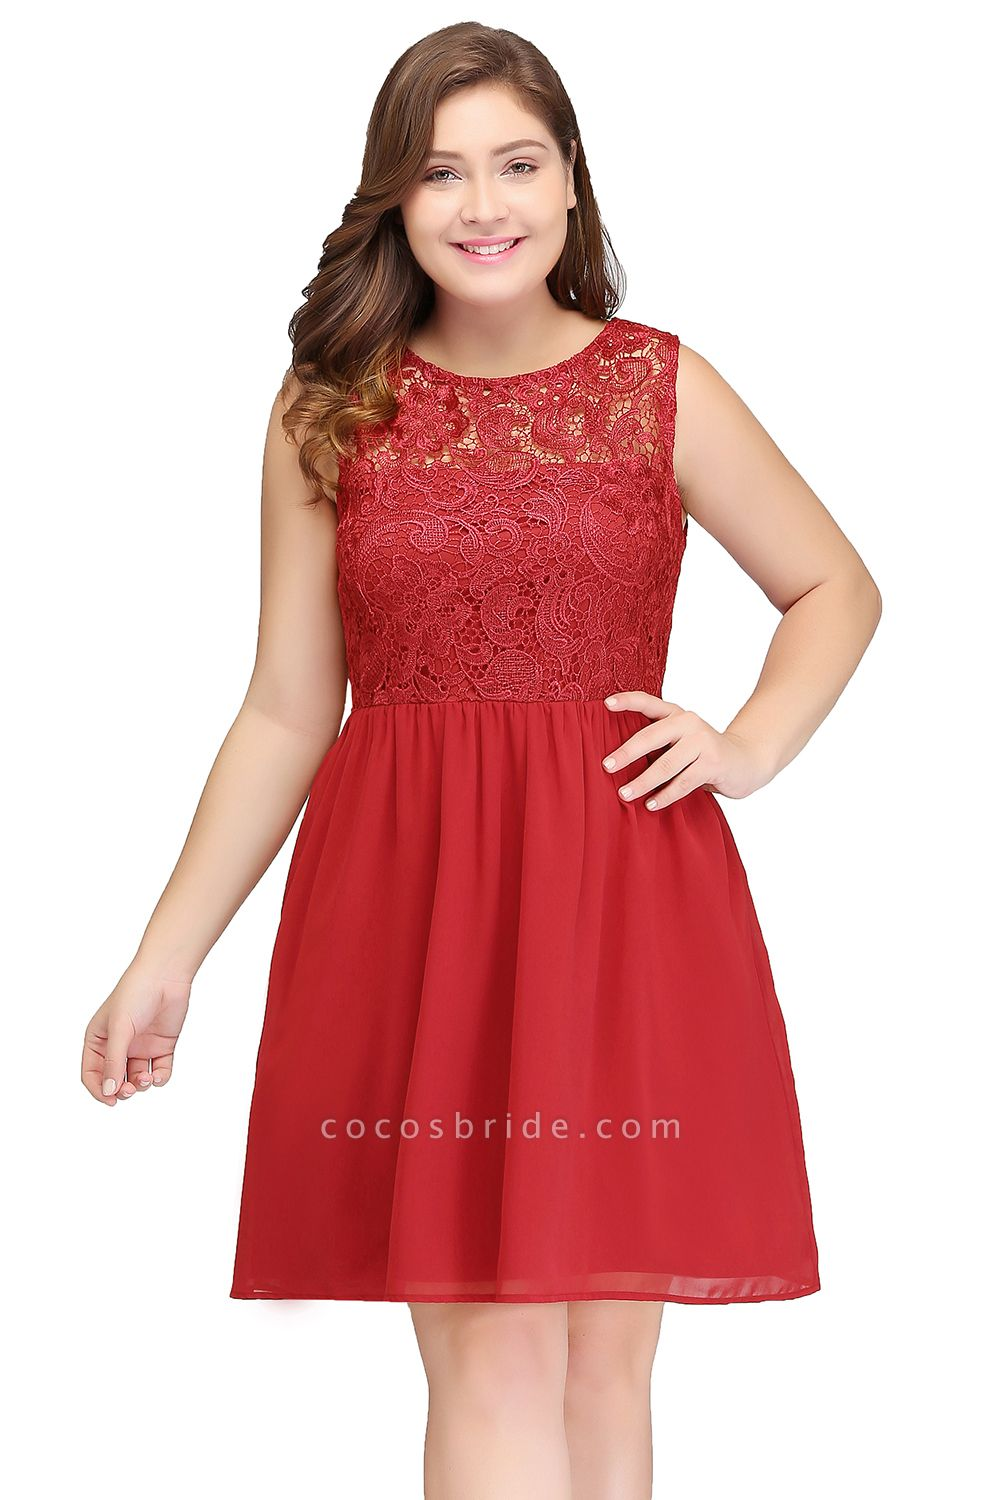 HENLEY | A-Line Crew Short Sleeveless Lace Chiffon Red Cocktail Dresses